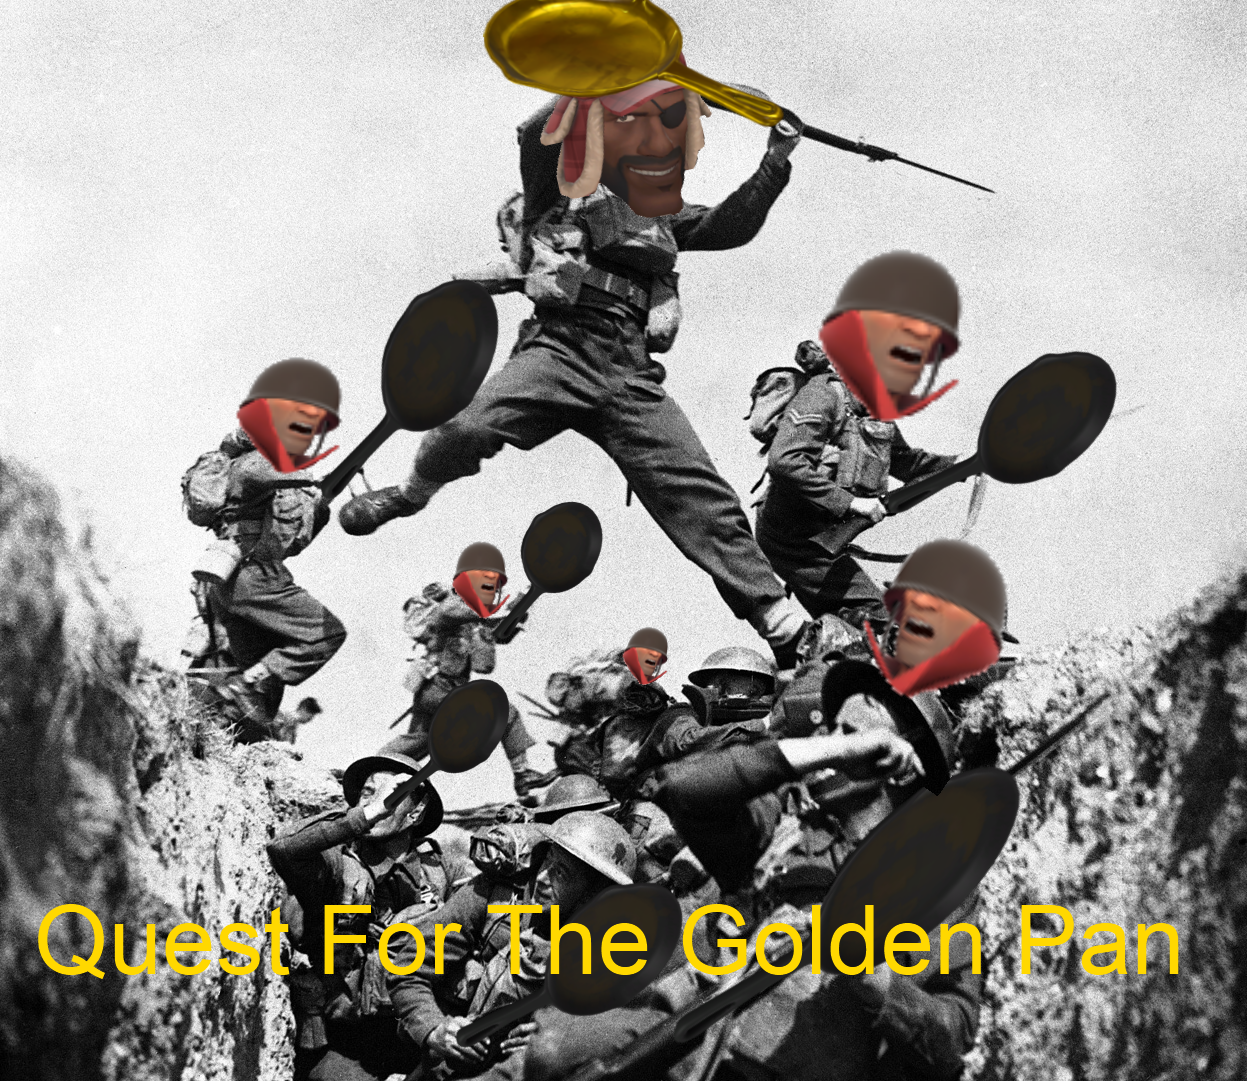 quest-for-the-golden-pan-png.52693